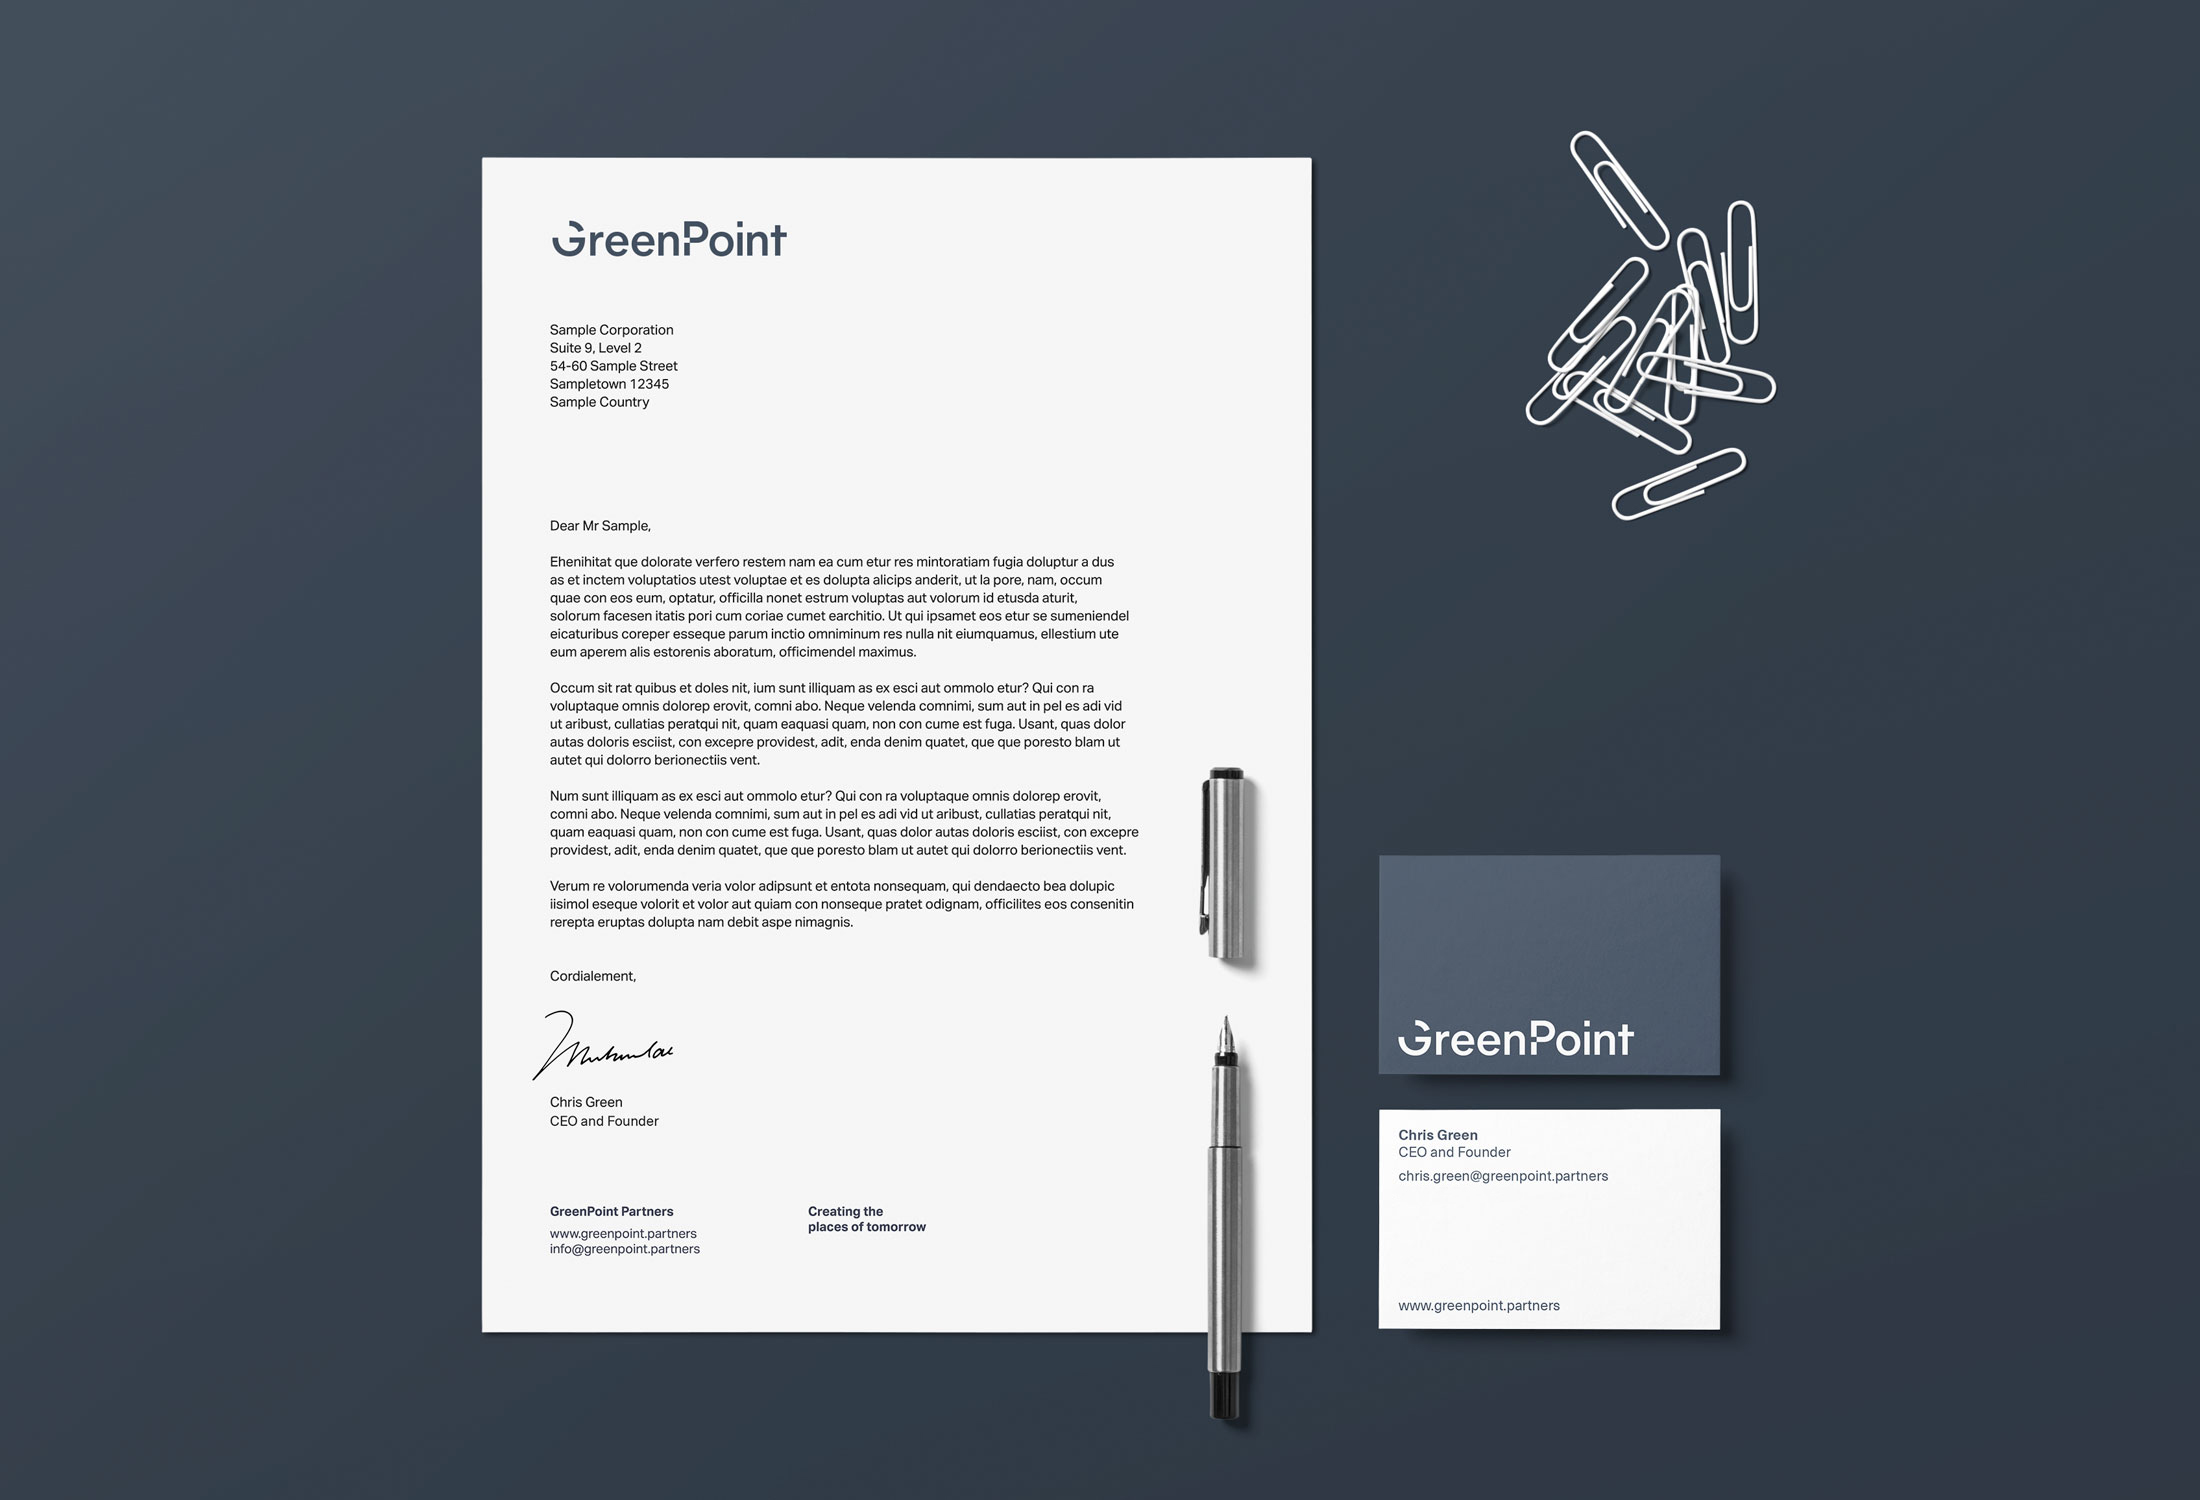 GreenPoint stationery